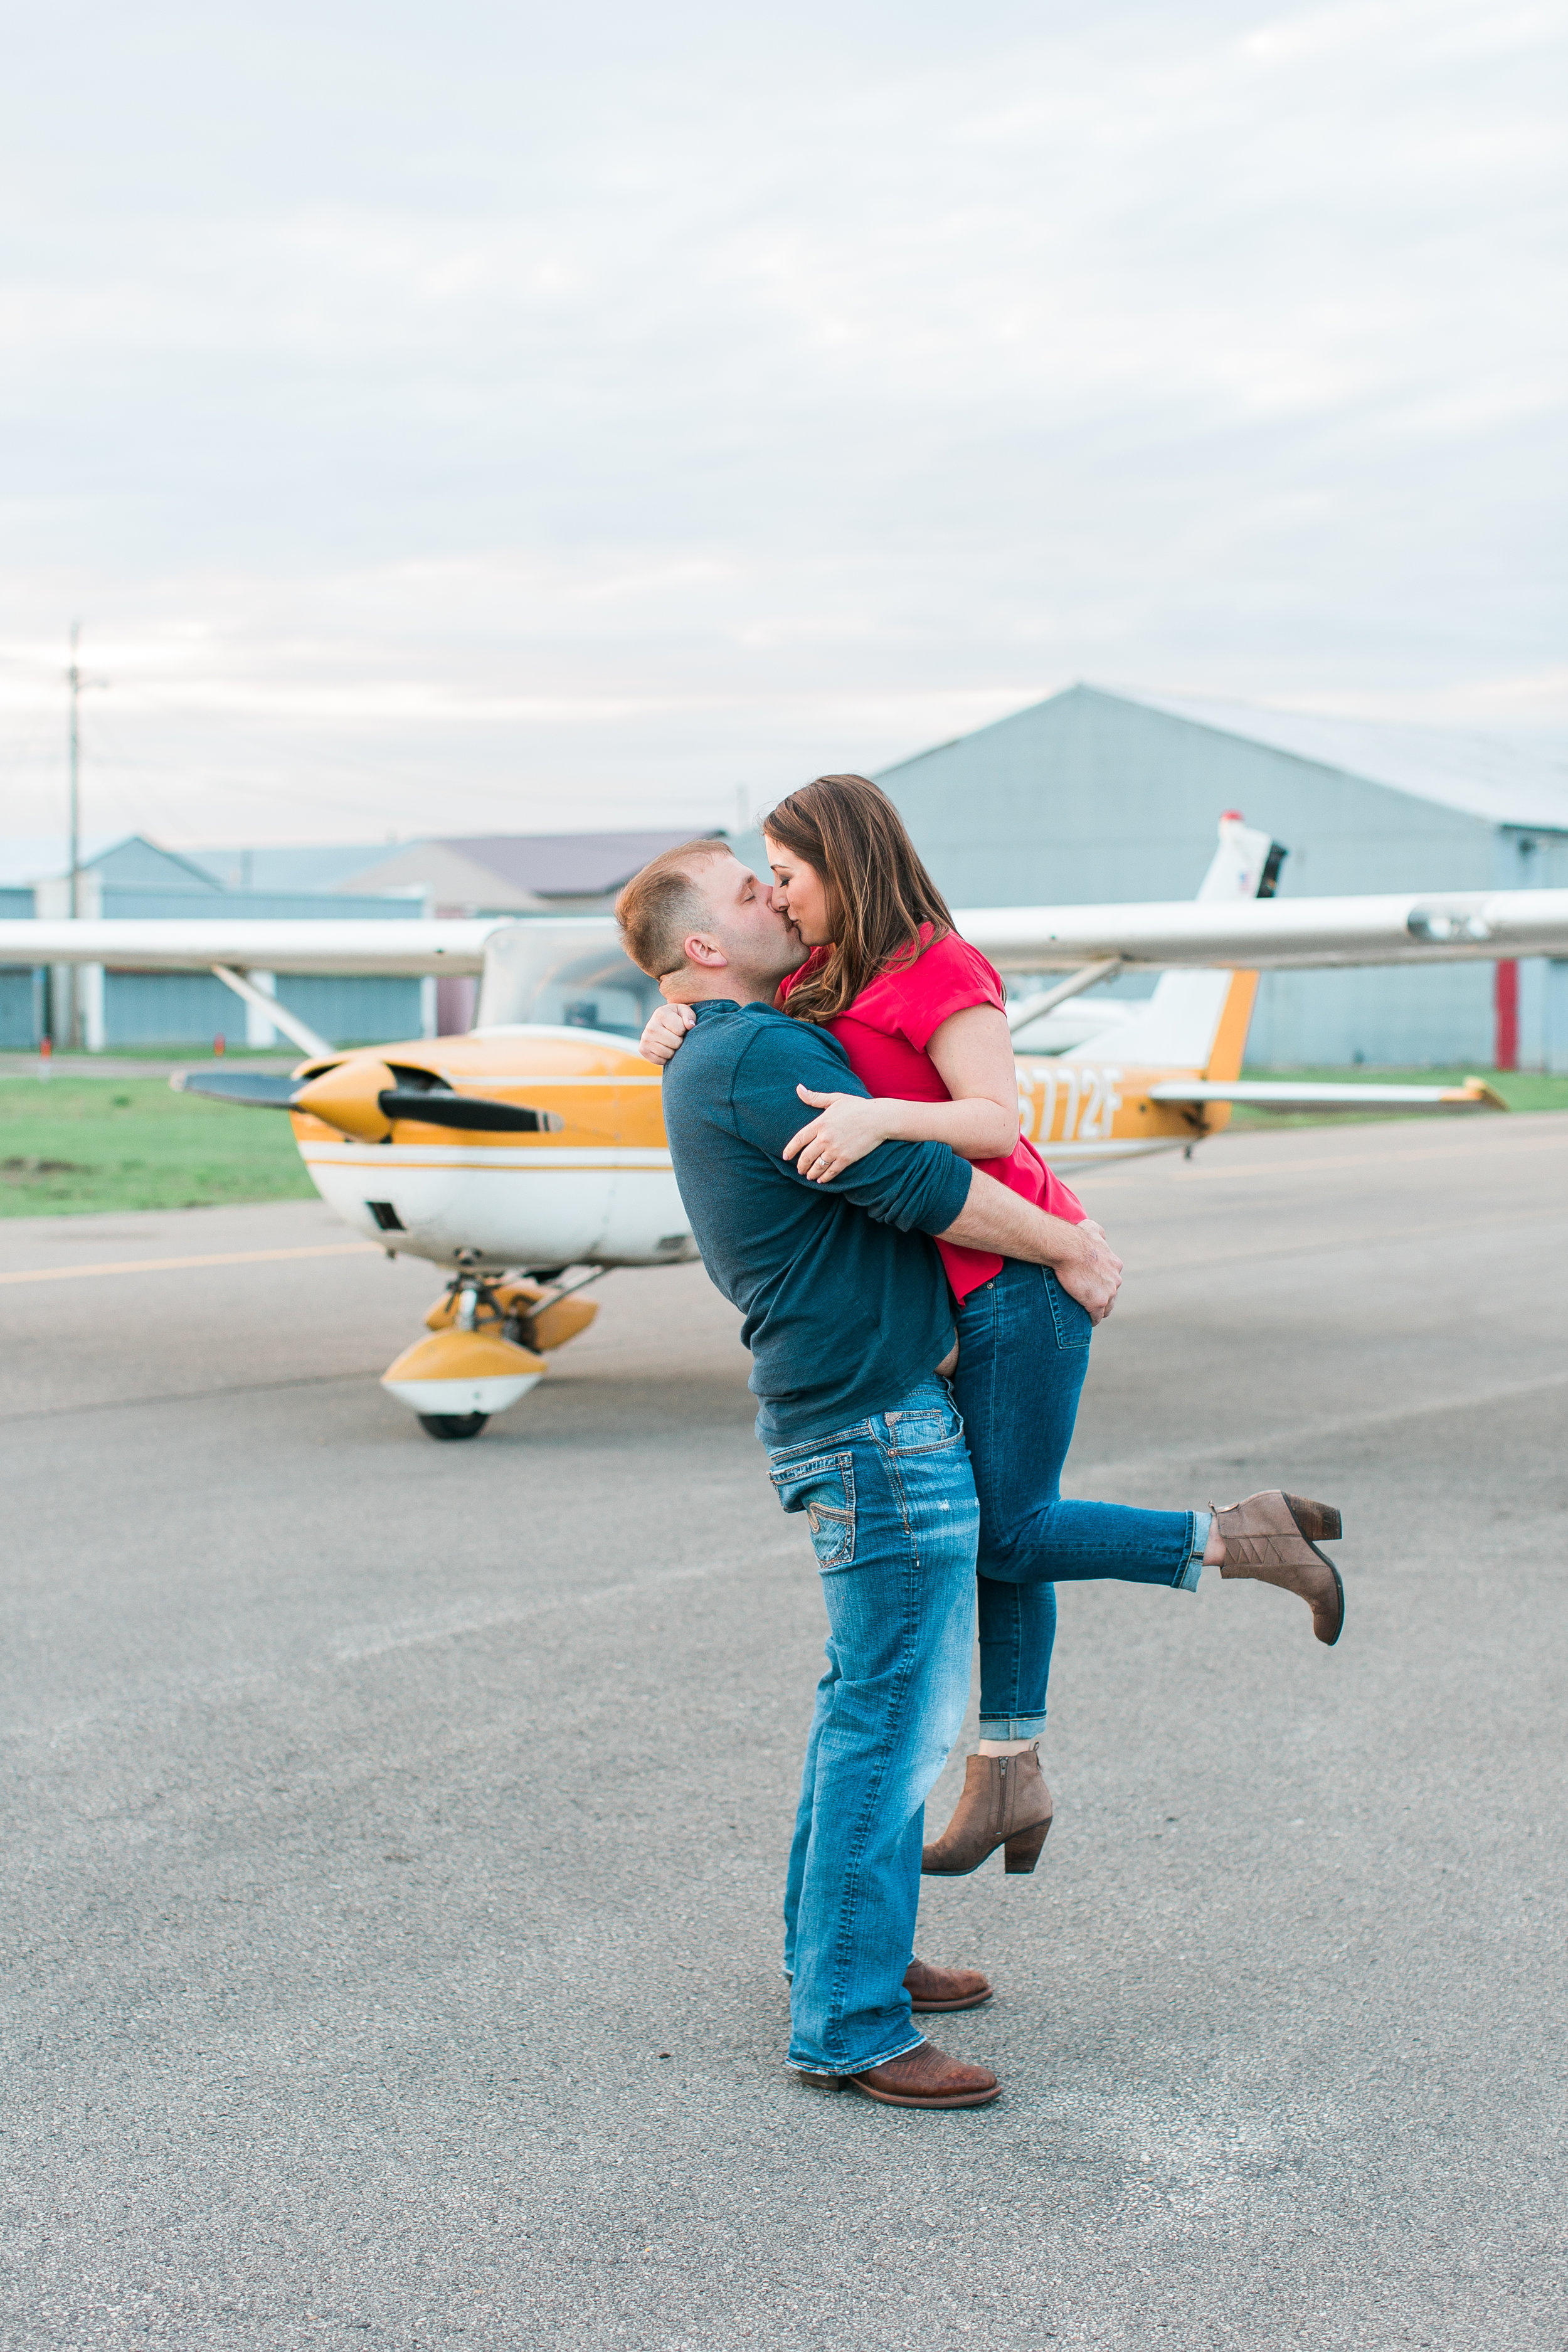 Engaged couple kissing and guy holding girl in front of airplane at Flying Cloud Airport in Eden Prairie for engagement session Minnesota engagement photographer Mallory Kiesow Photography